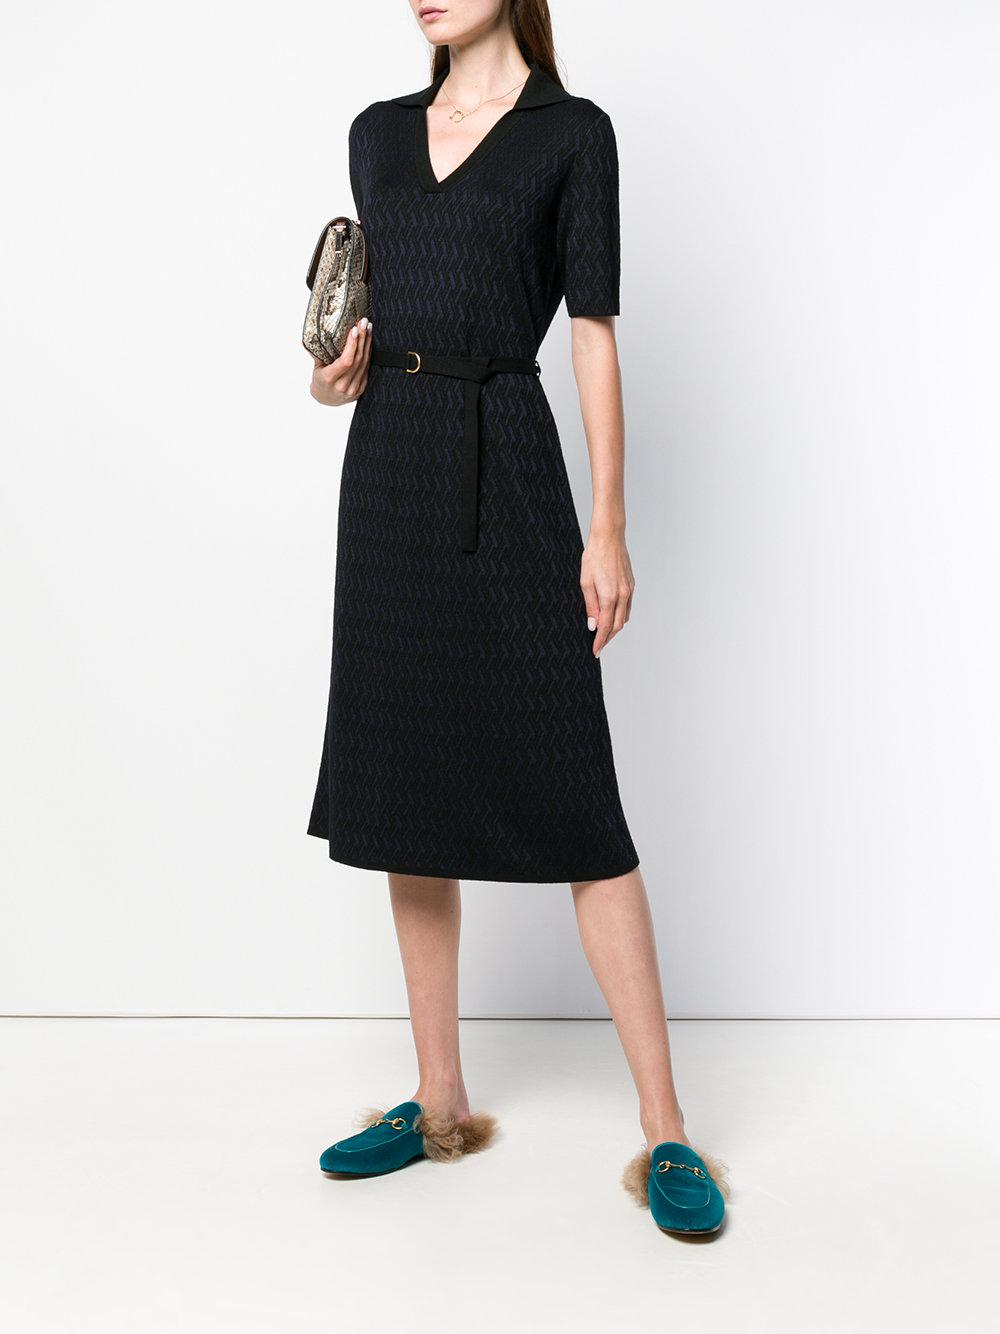 613dc77c180 Tory Burch - Black Jacquard Dress - Lyst. View fullscreen